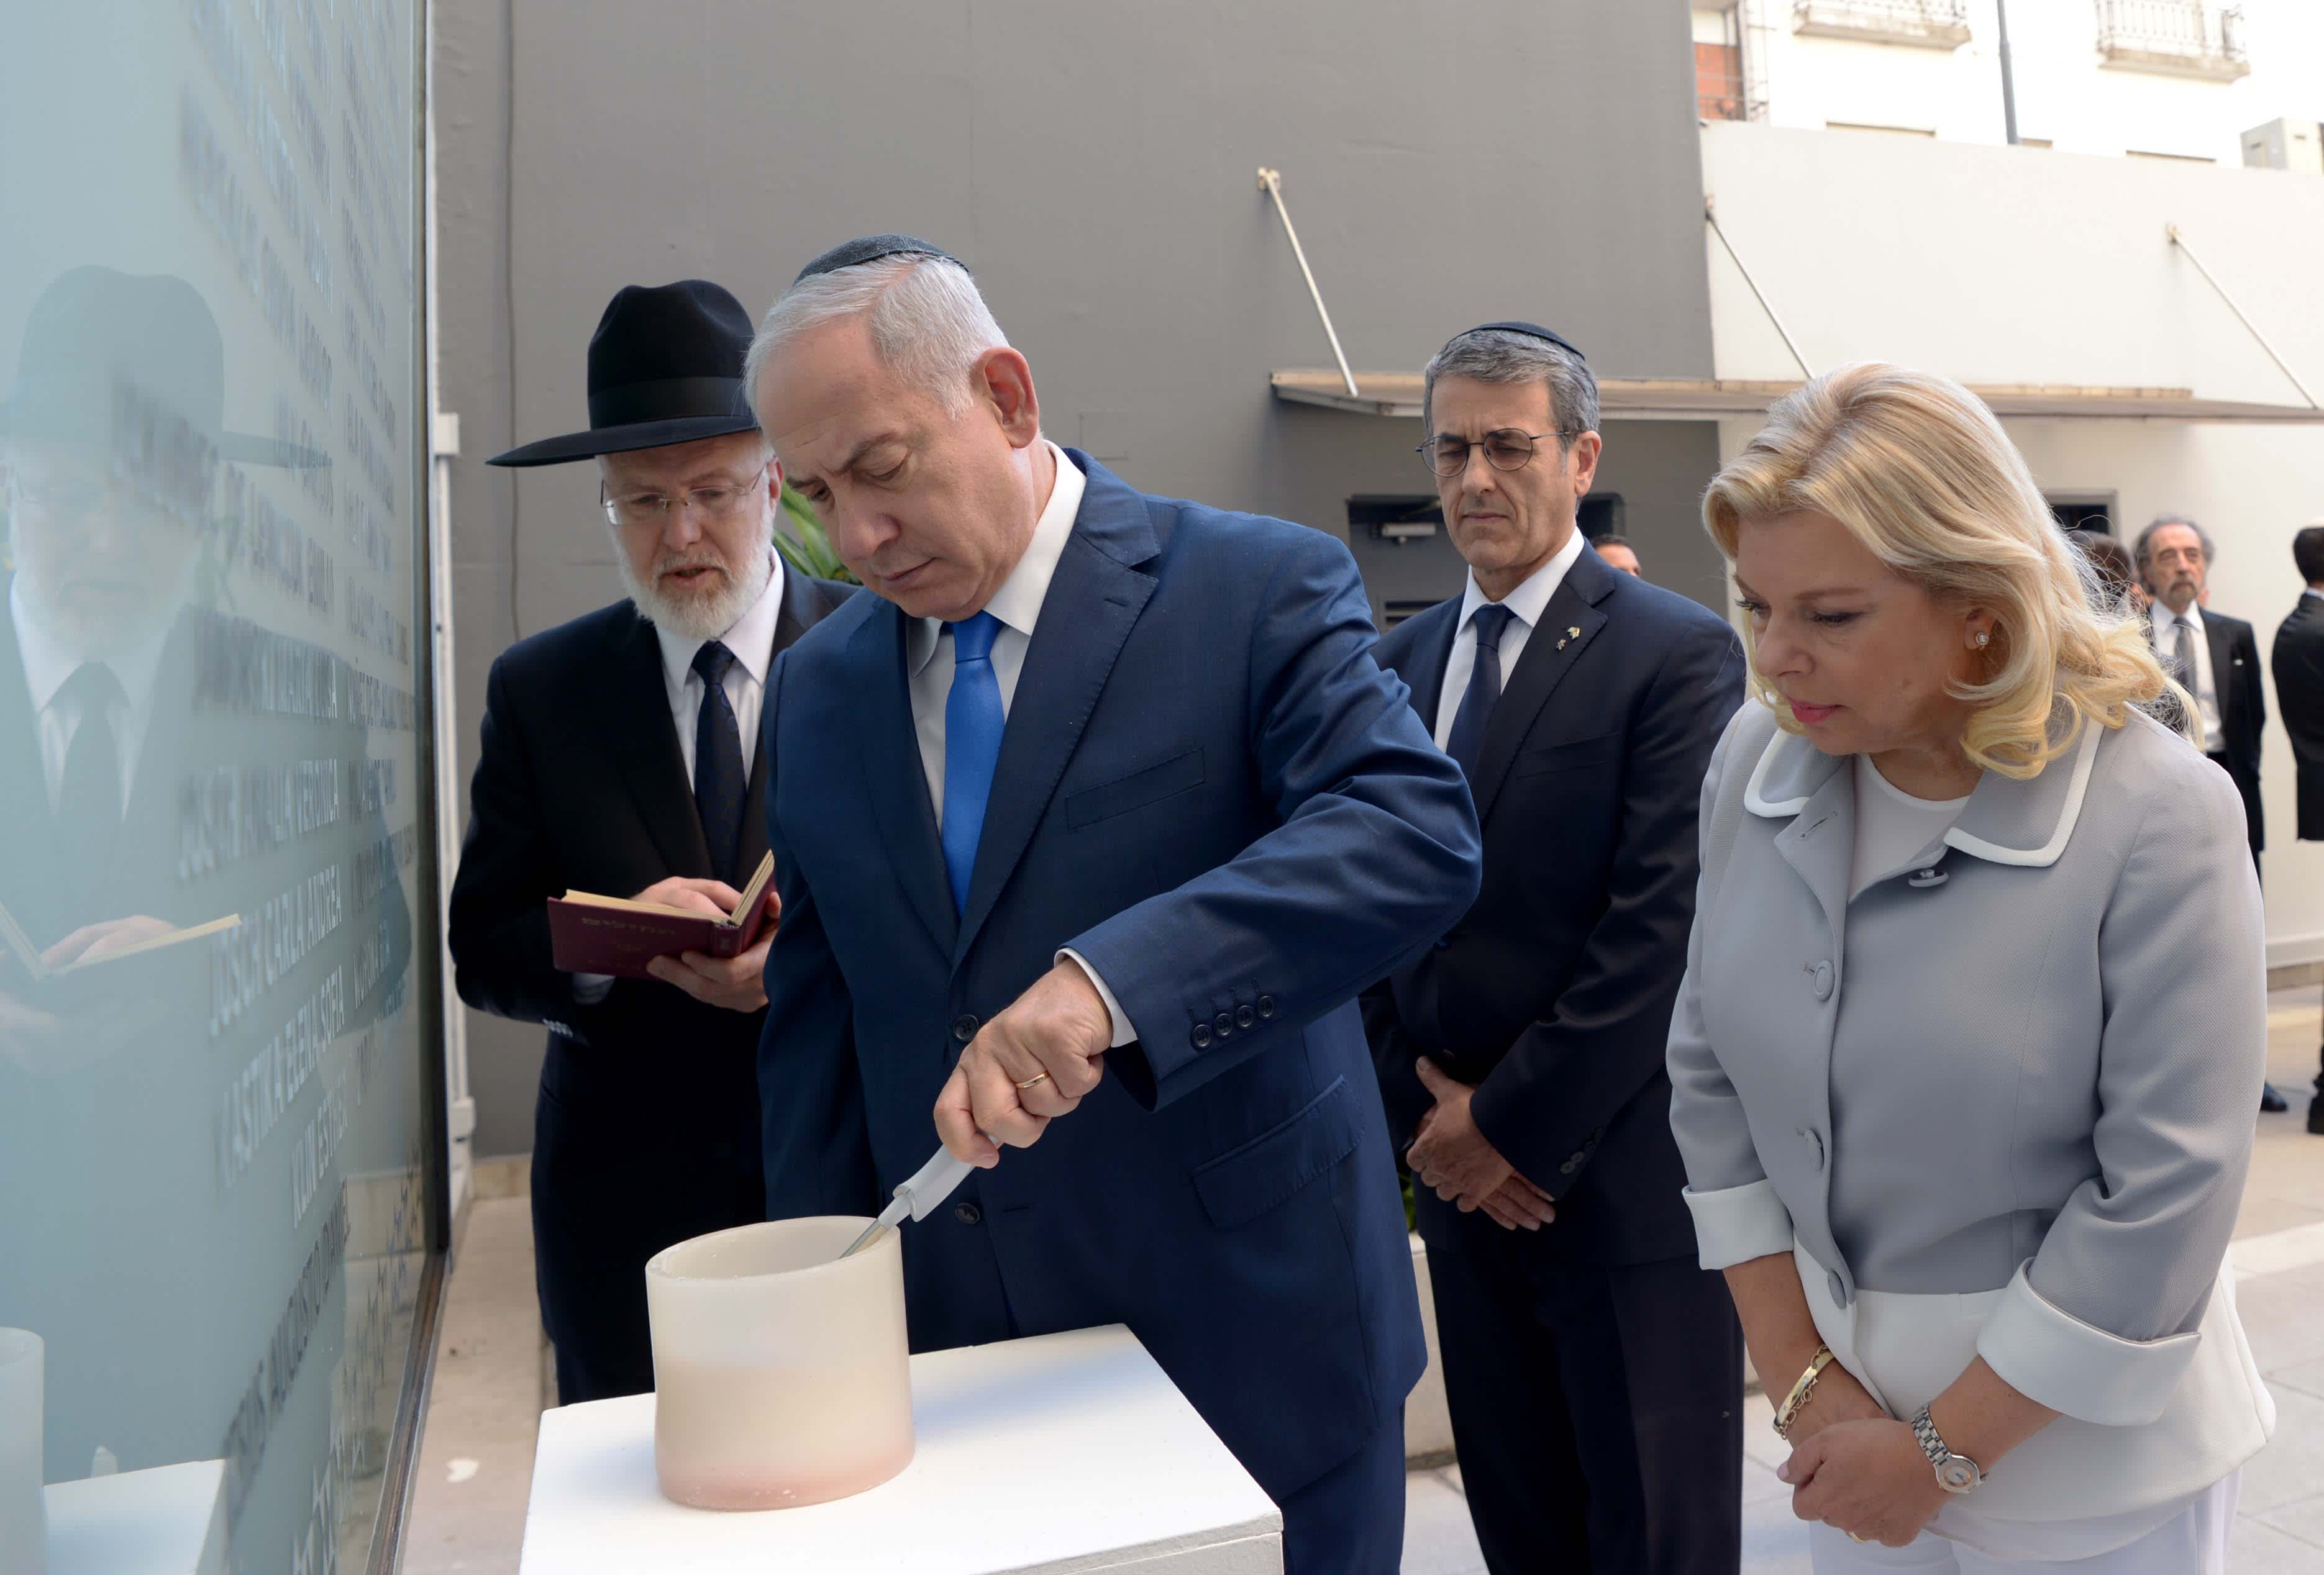 Prime Minister Benjamin Netanyahu and his wife, Sara Netanyahu at a memorial for the Buenos Aires embassy attack of 1992 with Argentinian President Mauricio Macri, September 11, 2017. (Avi Ohayon/GPO)